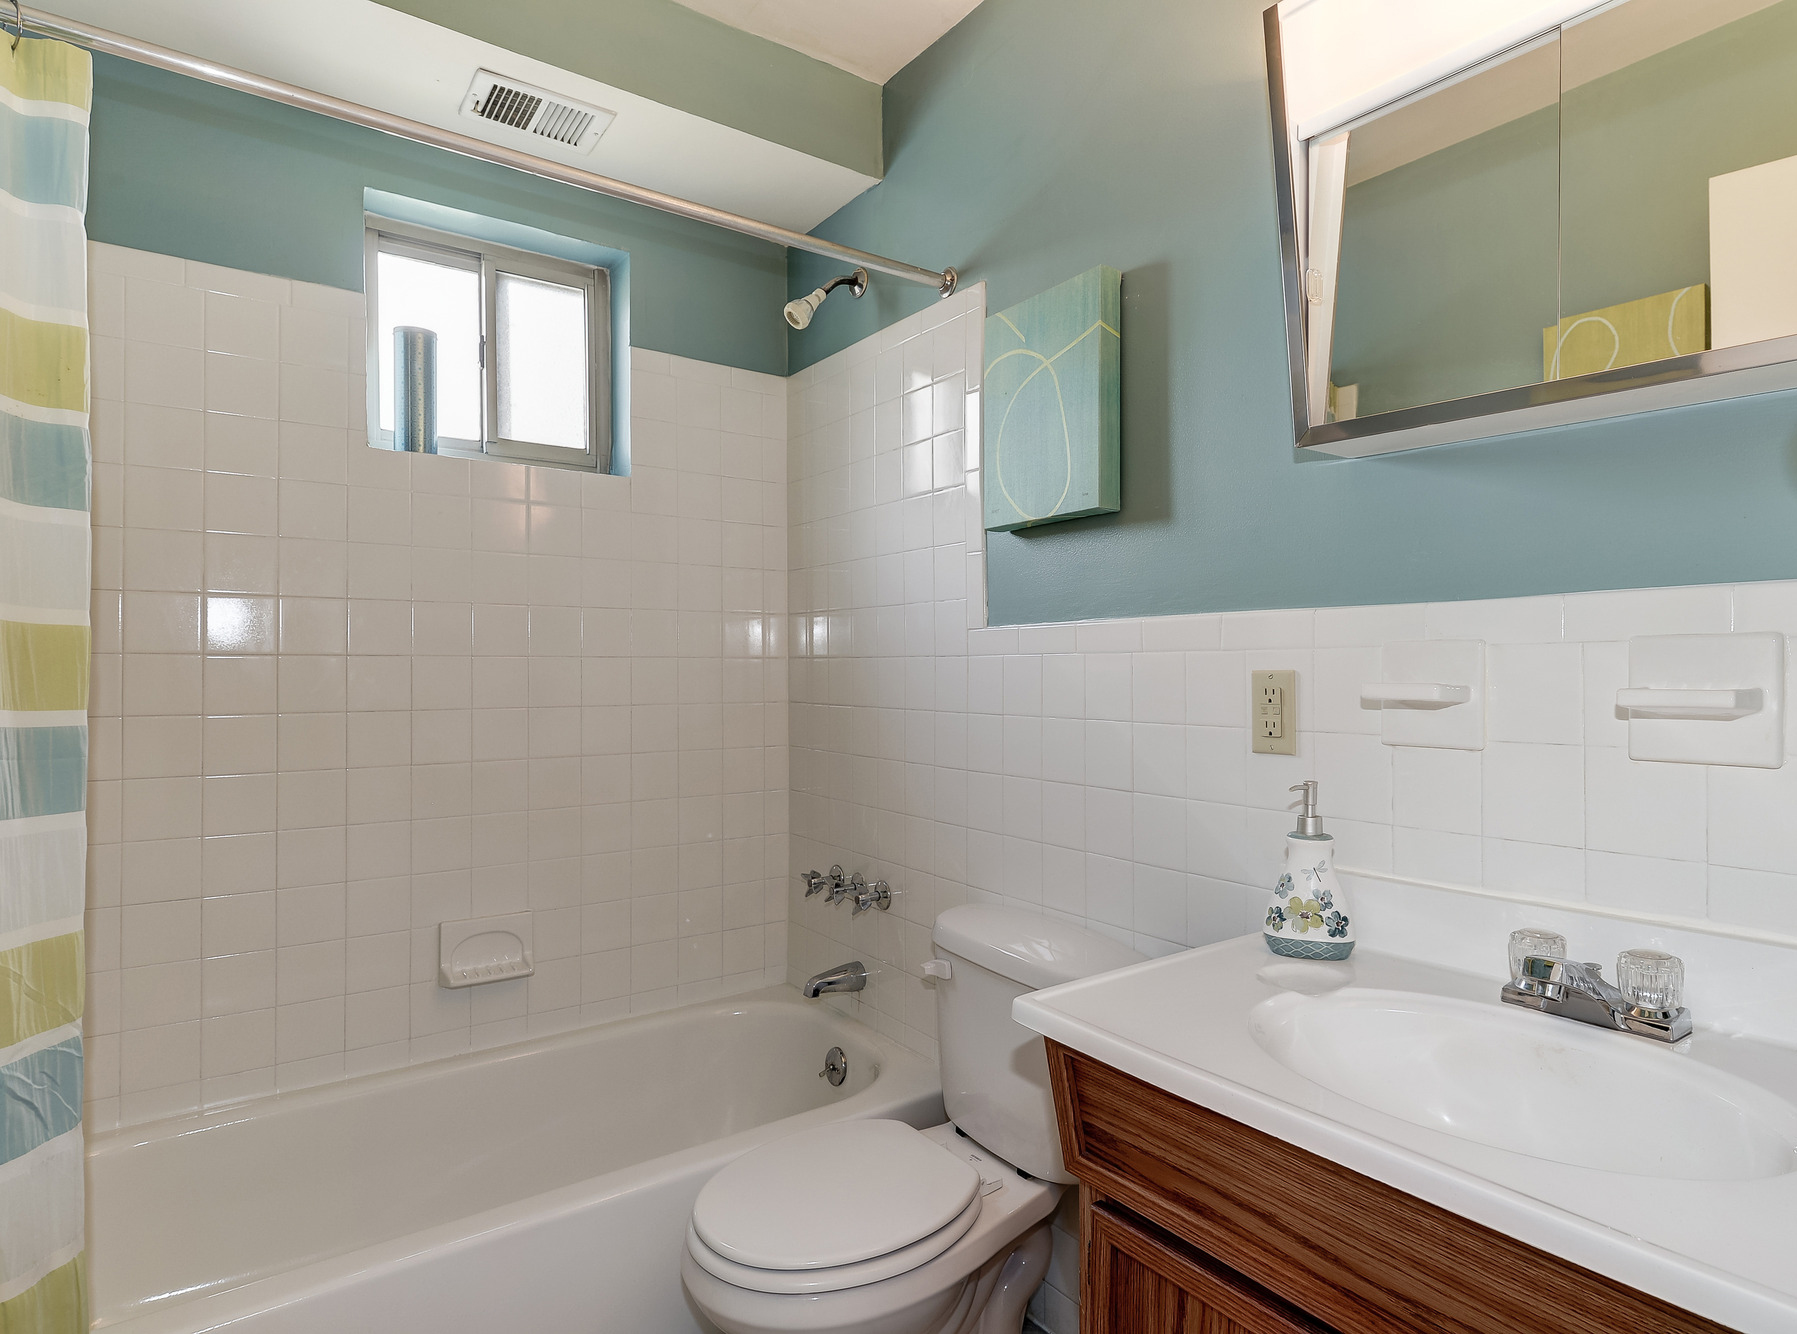 Barclay Square Apartments in Baltimore, MD - Bathroom